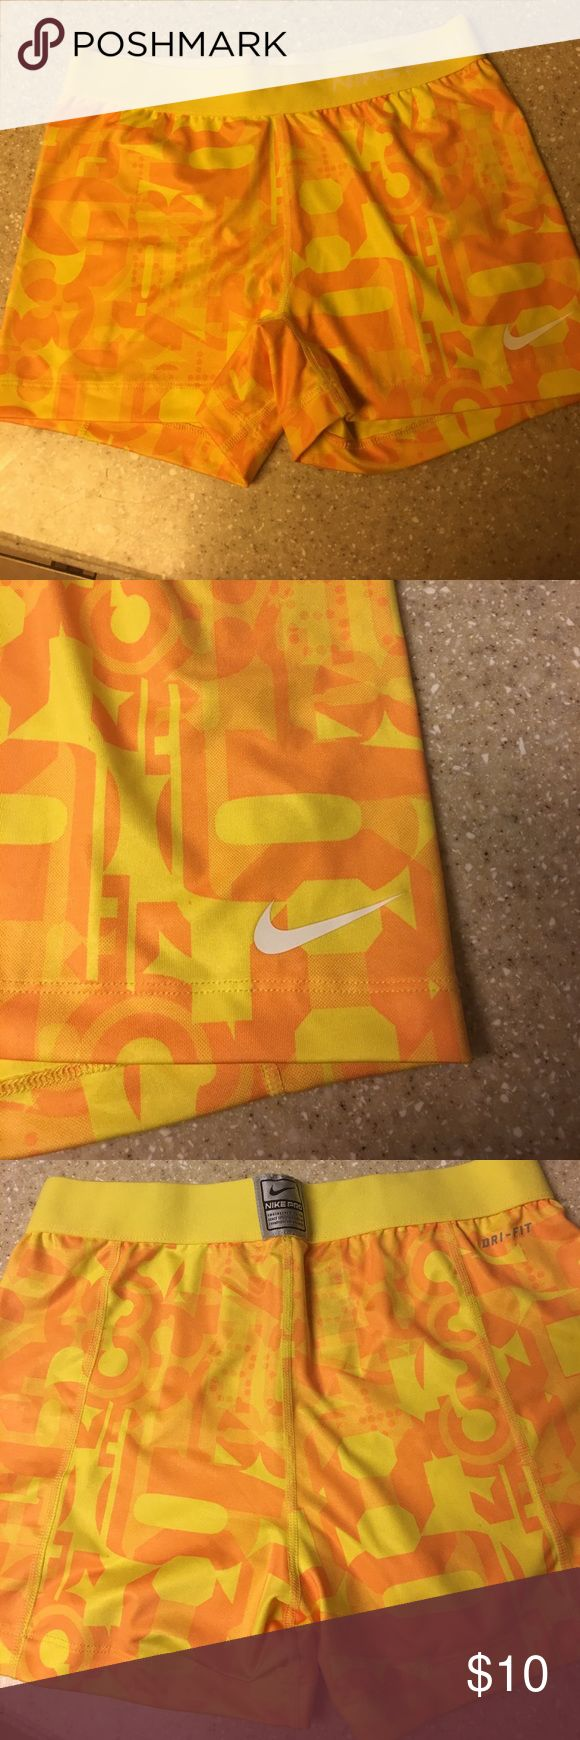 Nike cycle style shorts Dri Fit fluorescent yellow and orange. Super cute Nike Pro workout/running shorts.  Says Large 12/14 but runs very small. I am a size 2 or 3 in jeans. Nike Shorts